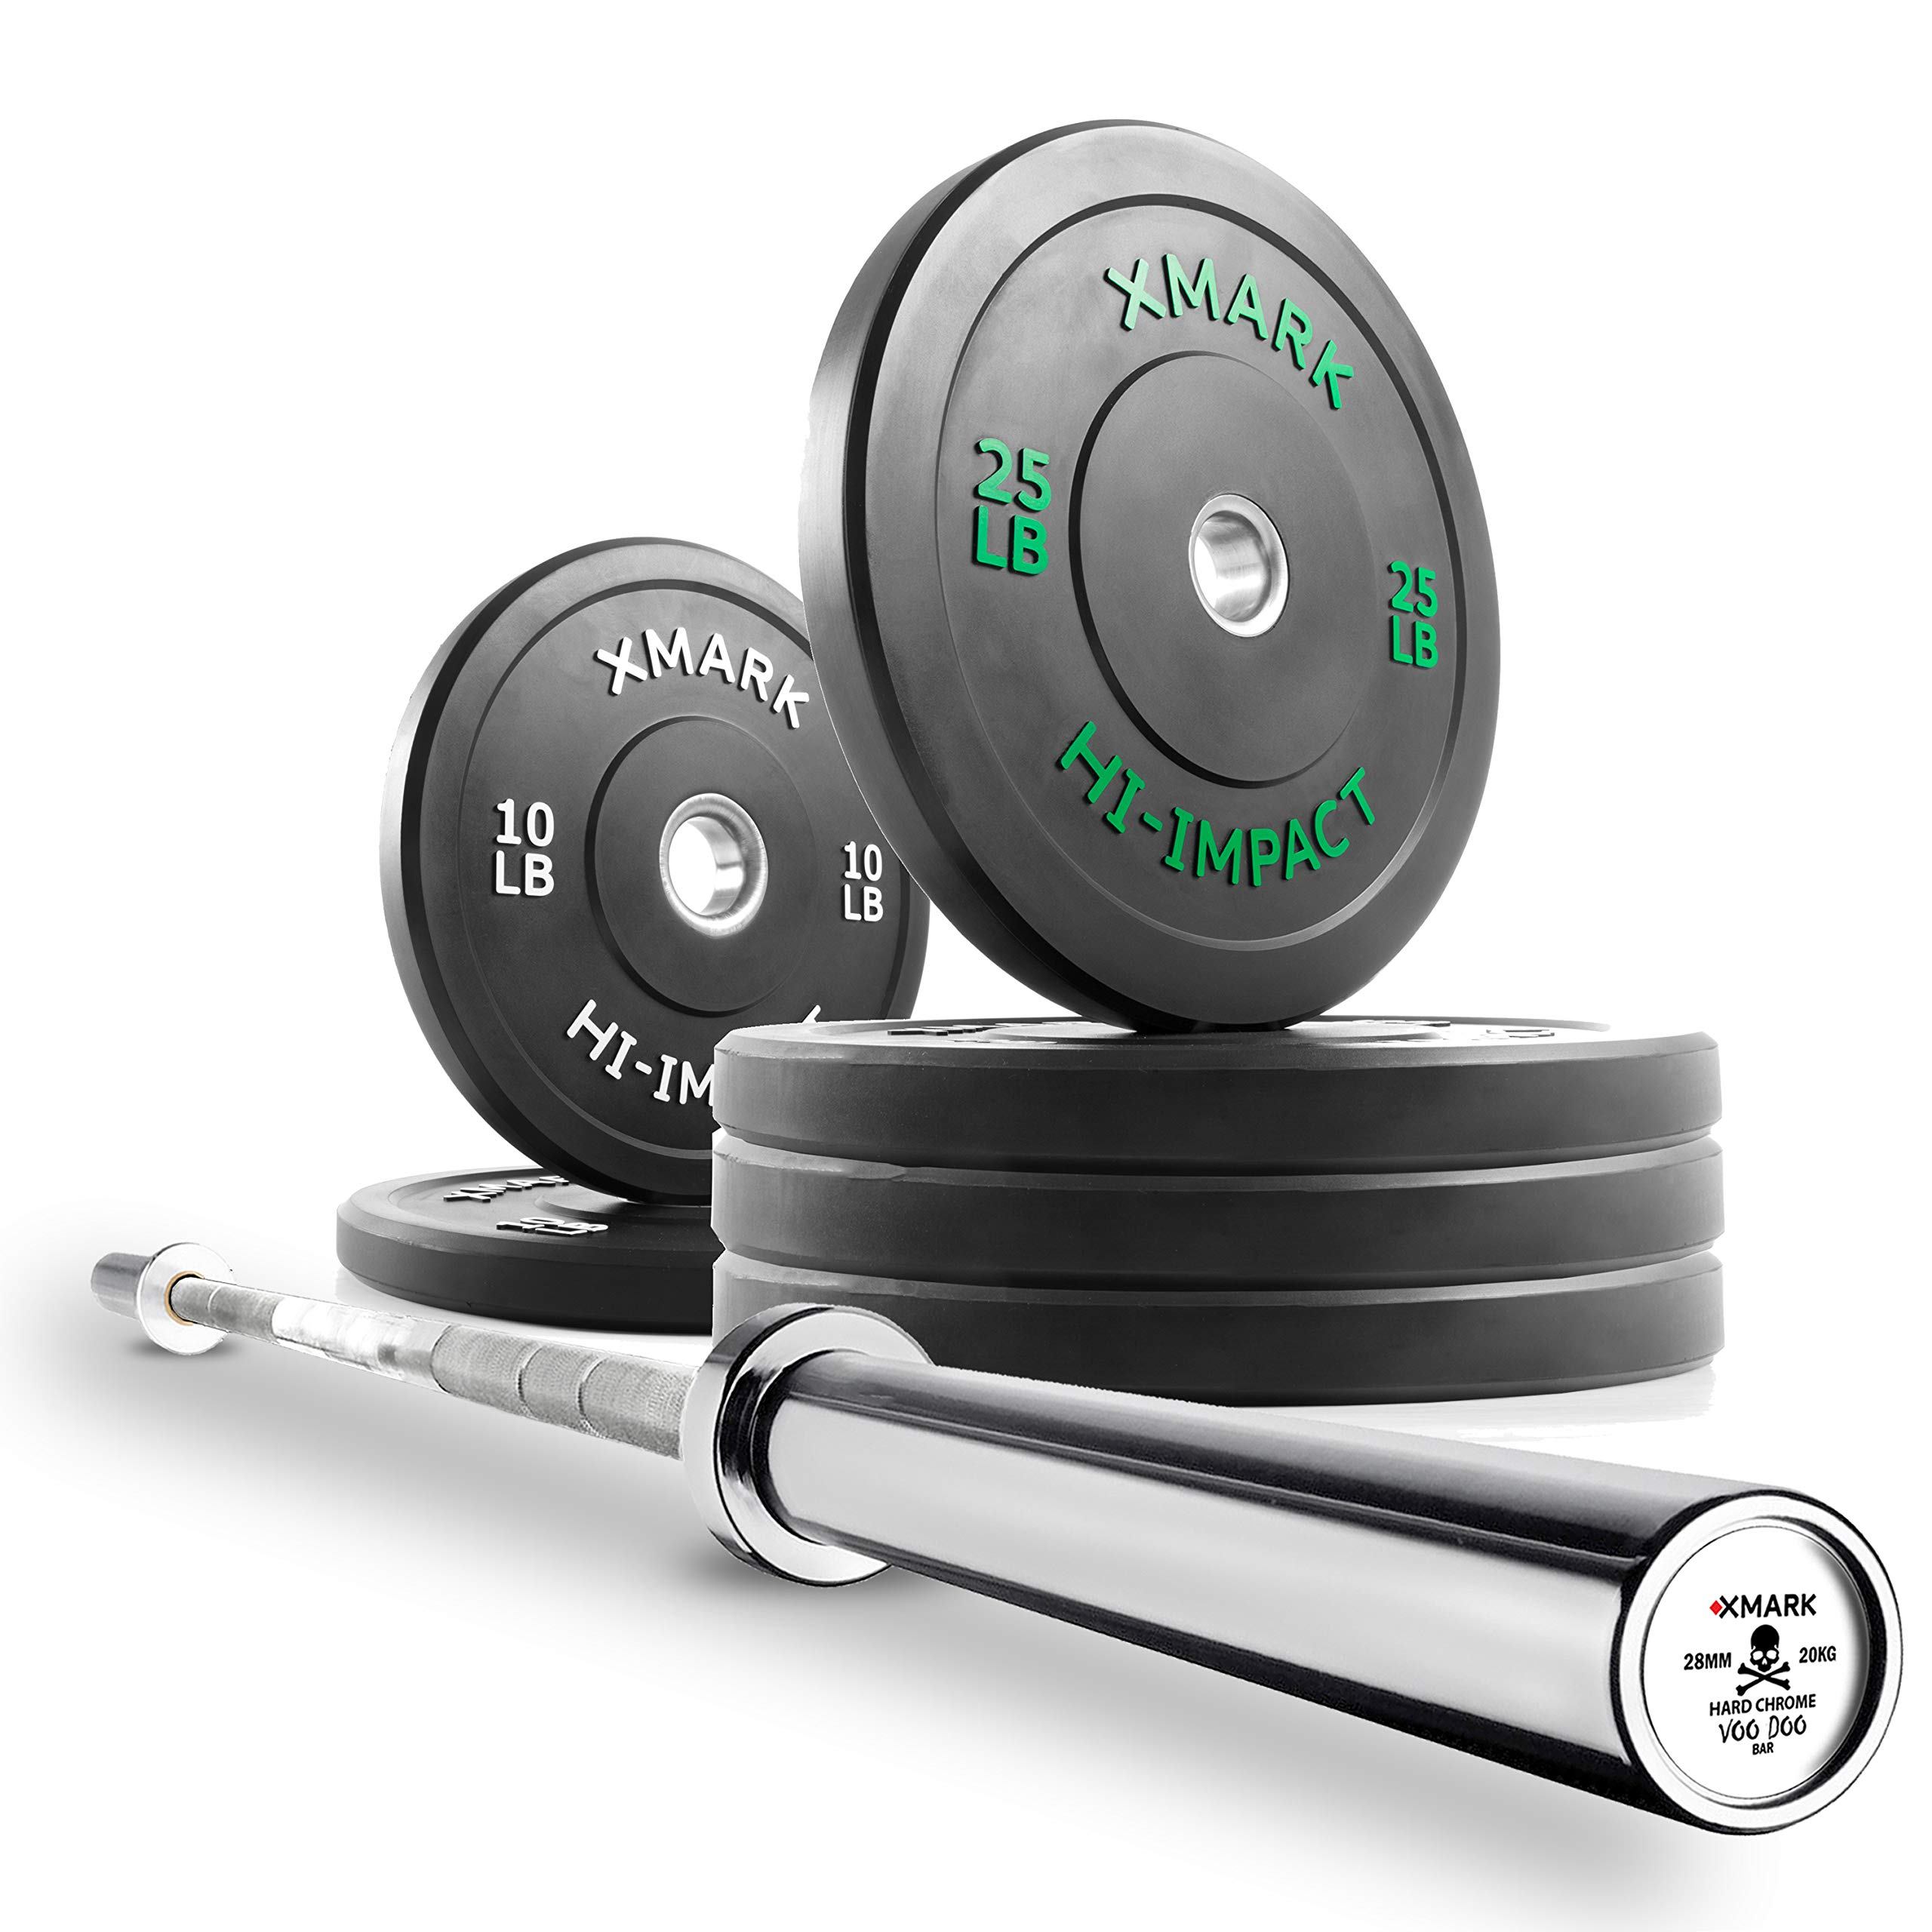 XMark Deadlift Voodoo-Chrome Olympic Bar and 120 lb XM-3393 Hi-Impact Commercial Olympic Bumper Set